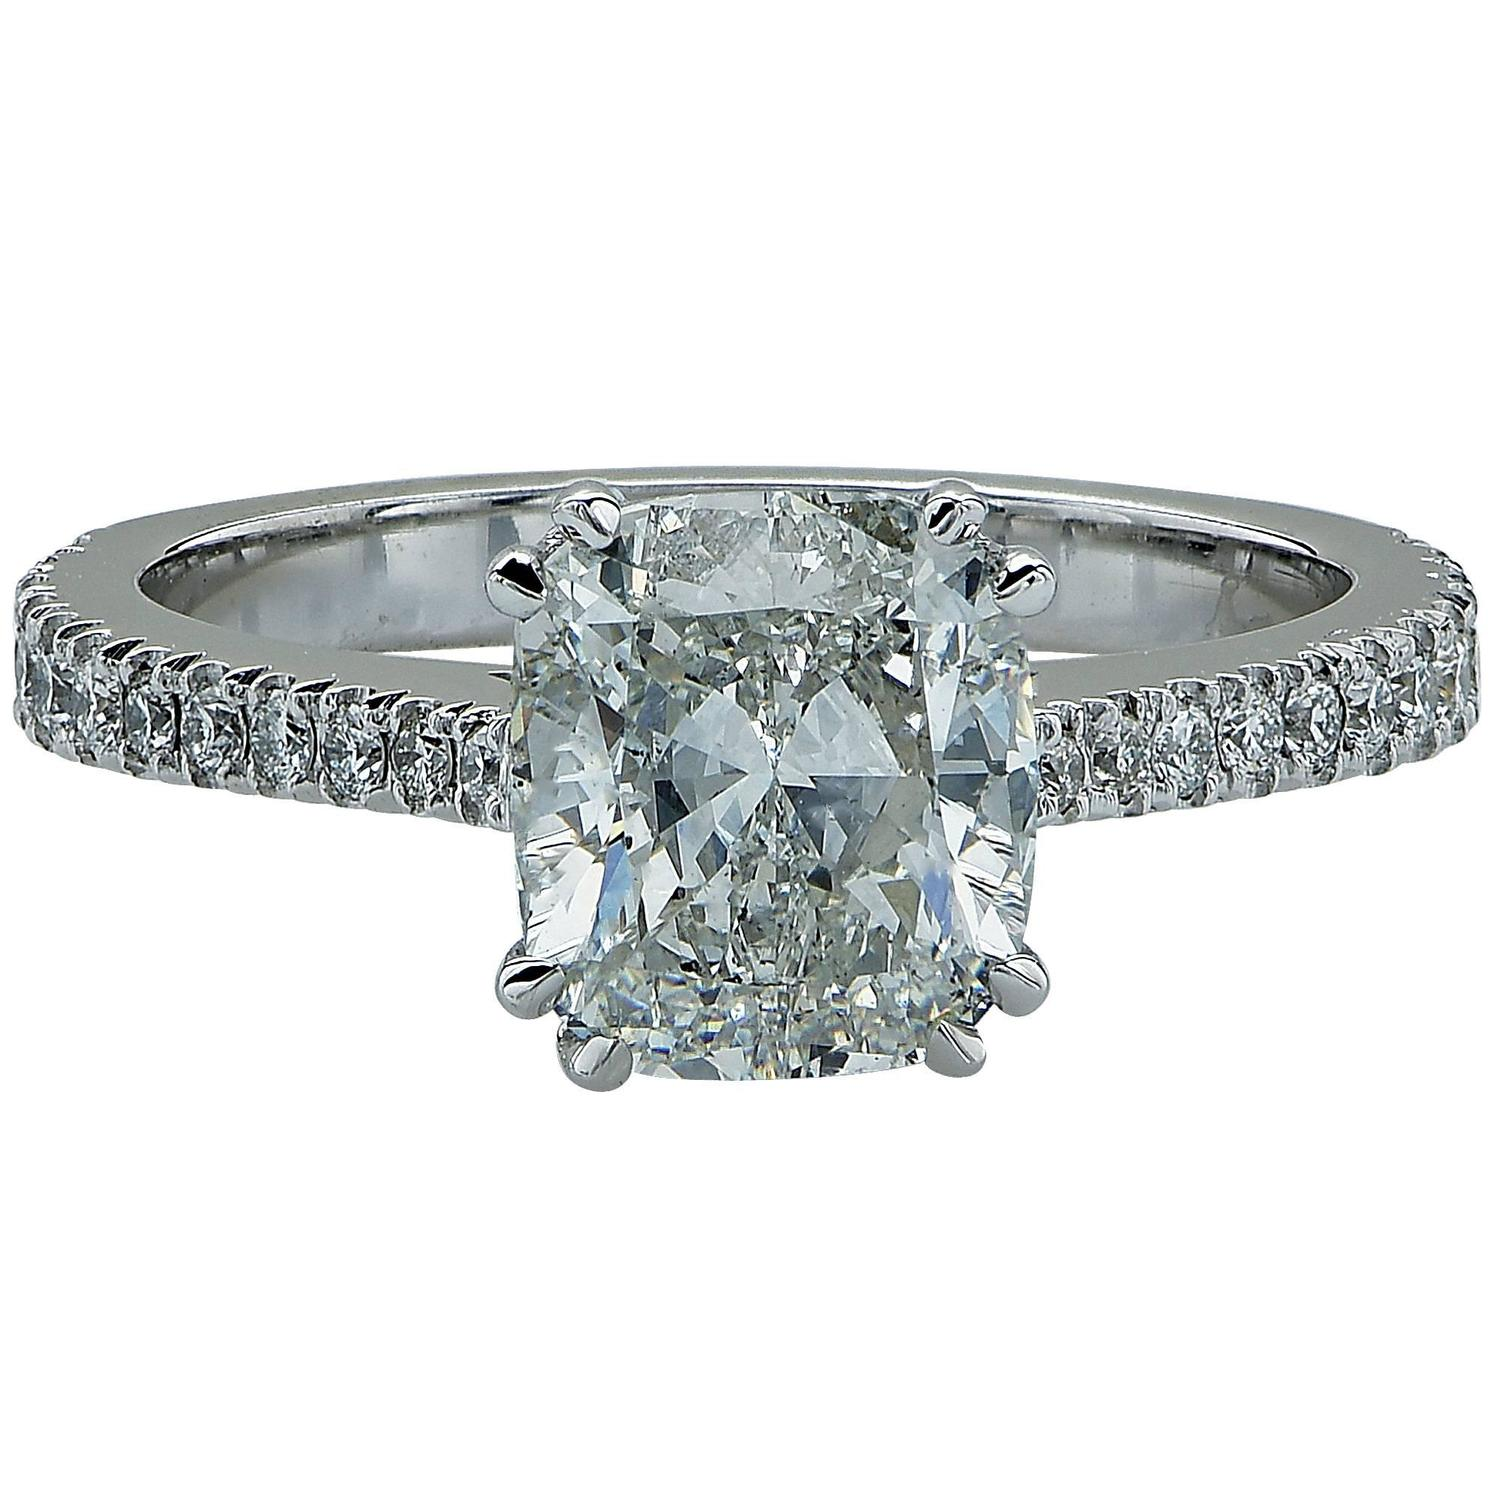 2 03 Carat Cushion Cut Diamond Gold Engagement Ring For Sale at 1stdibs